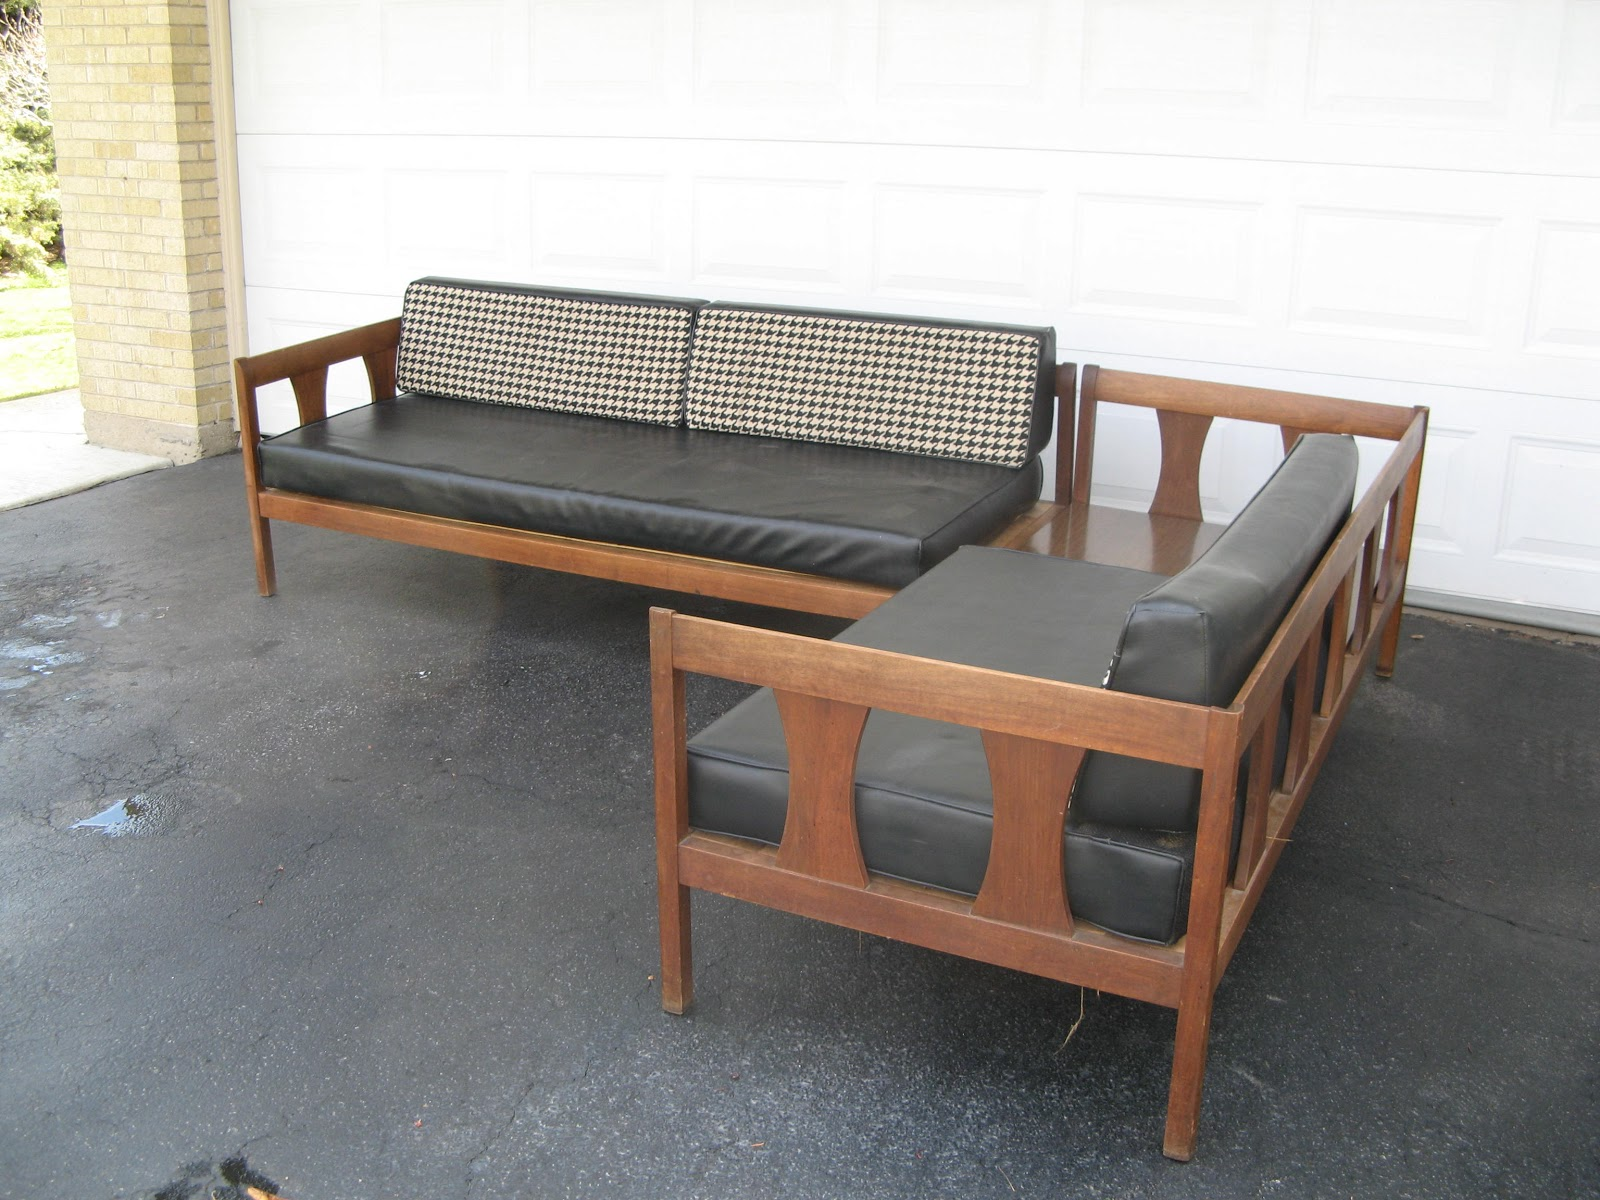 MidCenturyModernManiagmailcom Mid Century Corner Sectional With - Sectional with built in table